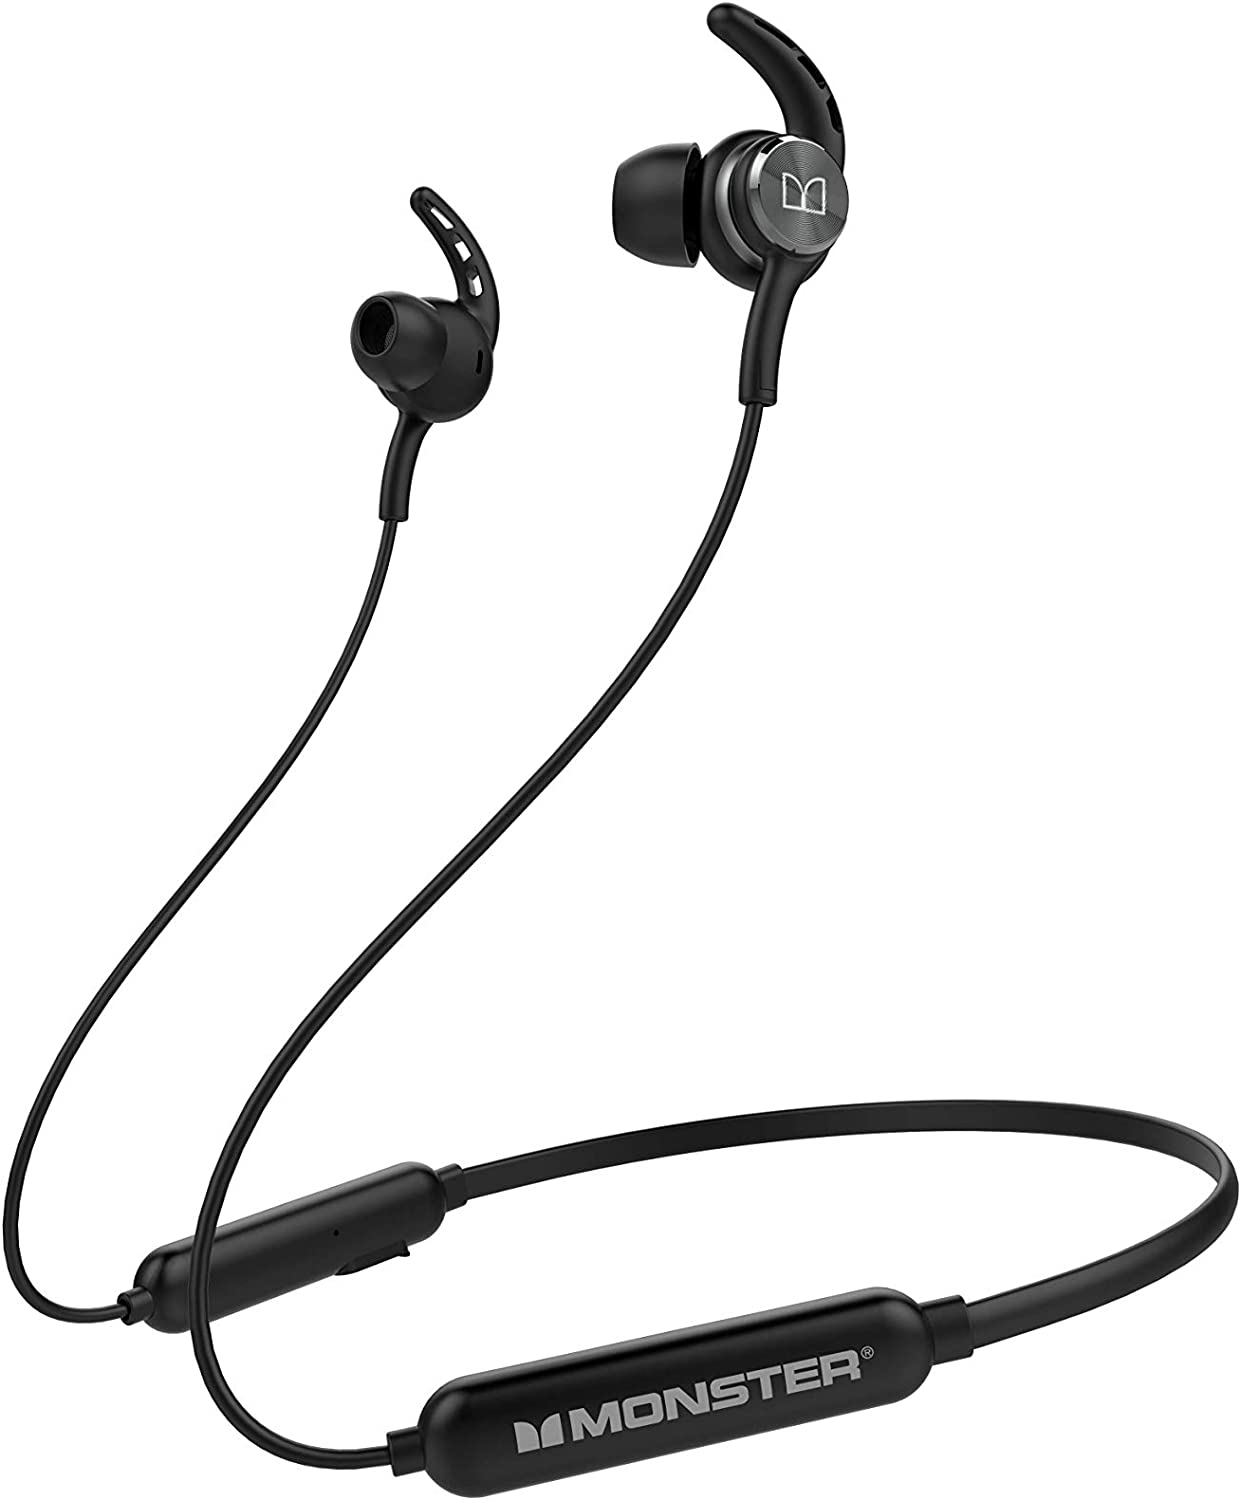 Amazon Com Wireless Headphones Bluetooth Headphones Bluetooth 5 0 Ipx5 Waterproof Built In Mic 1000min Playtime Bass Hi Fi Stereo Magnetic Connection For Sports Running Home Audio Theater